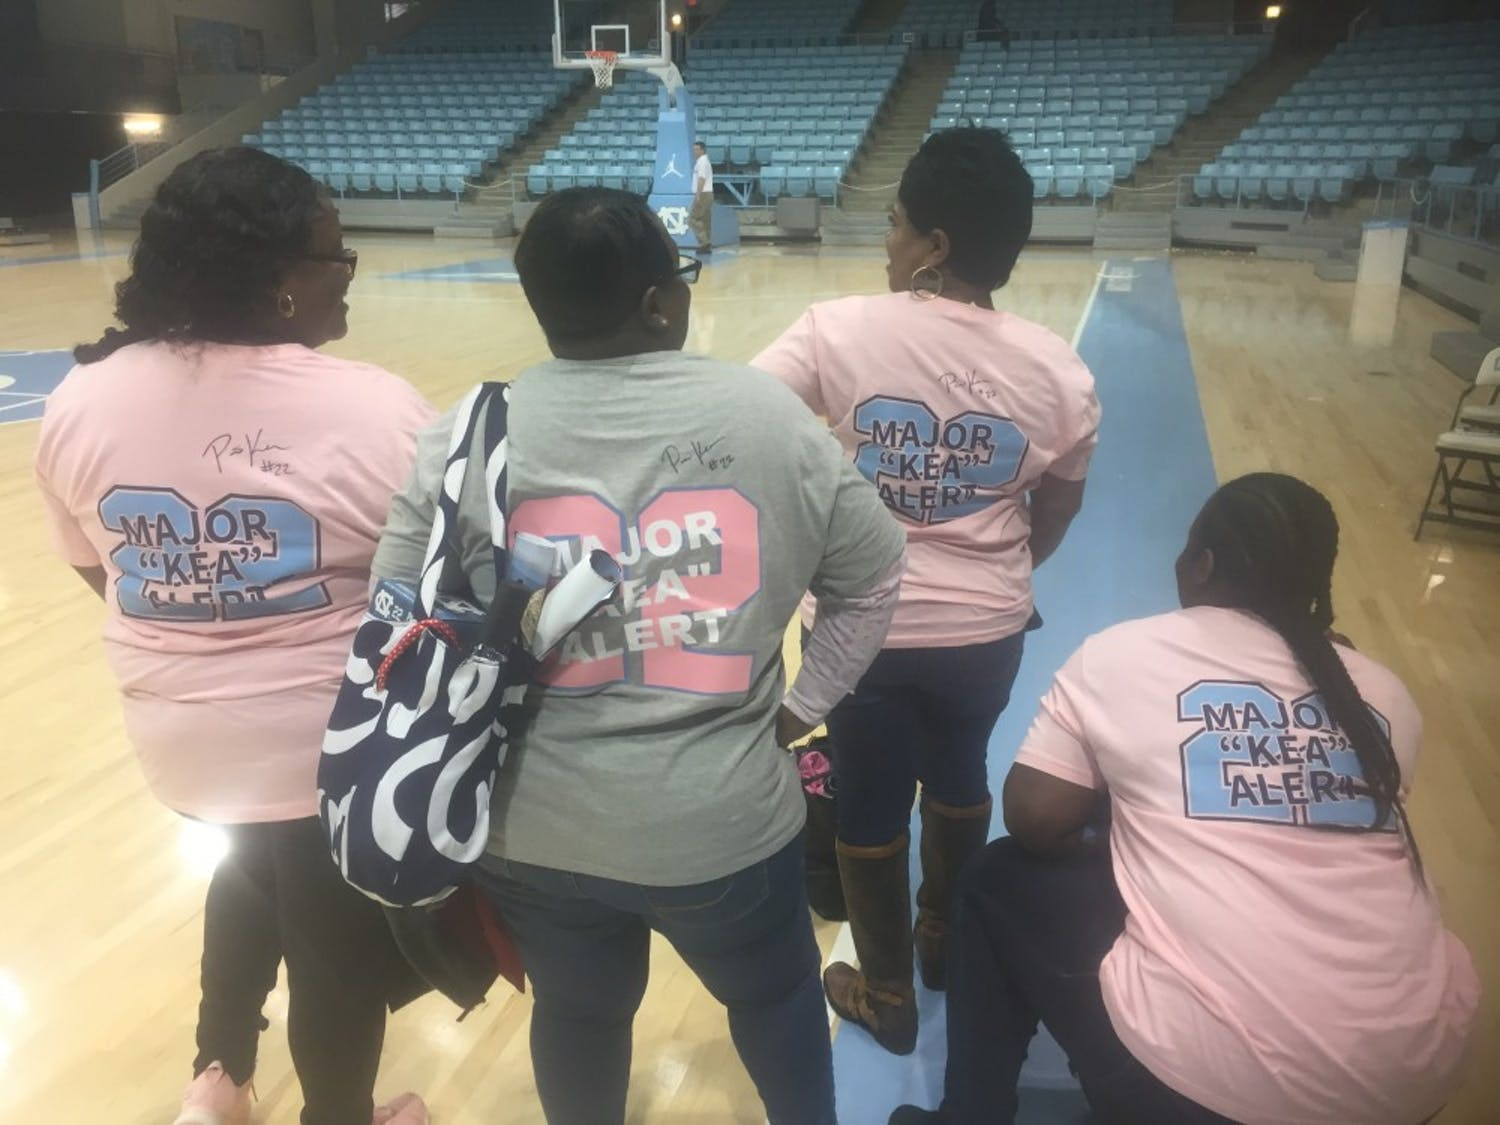 Friends and family of Paris Kea don shirts with her name on it for senior night on Feb. 23, 2019 in a 74-69 loss to No. 9 N.C. State at Carmichael Arena.